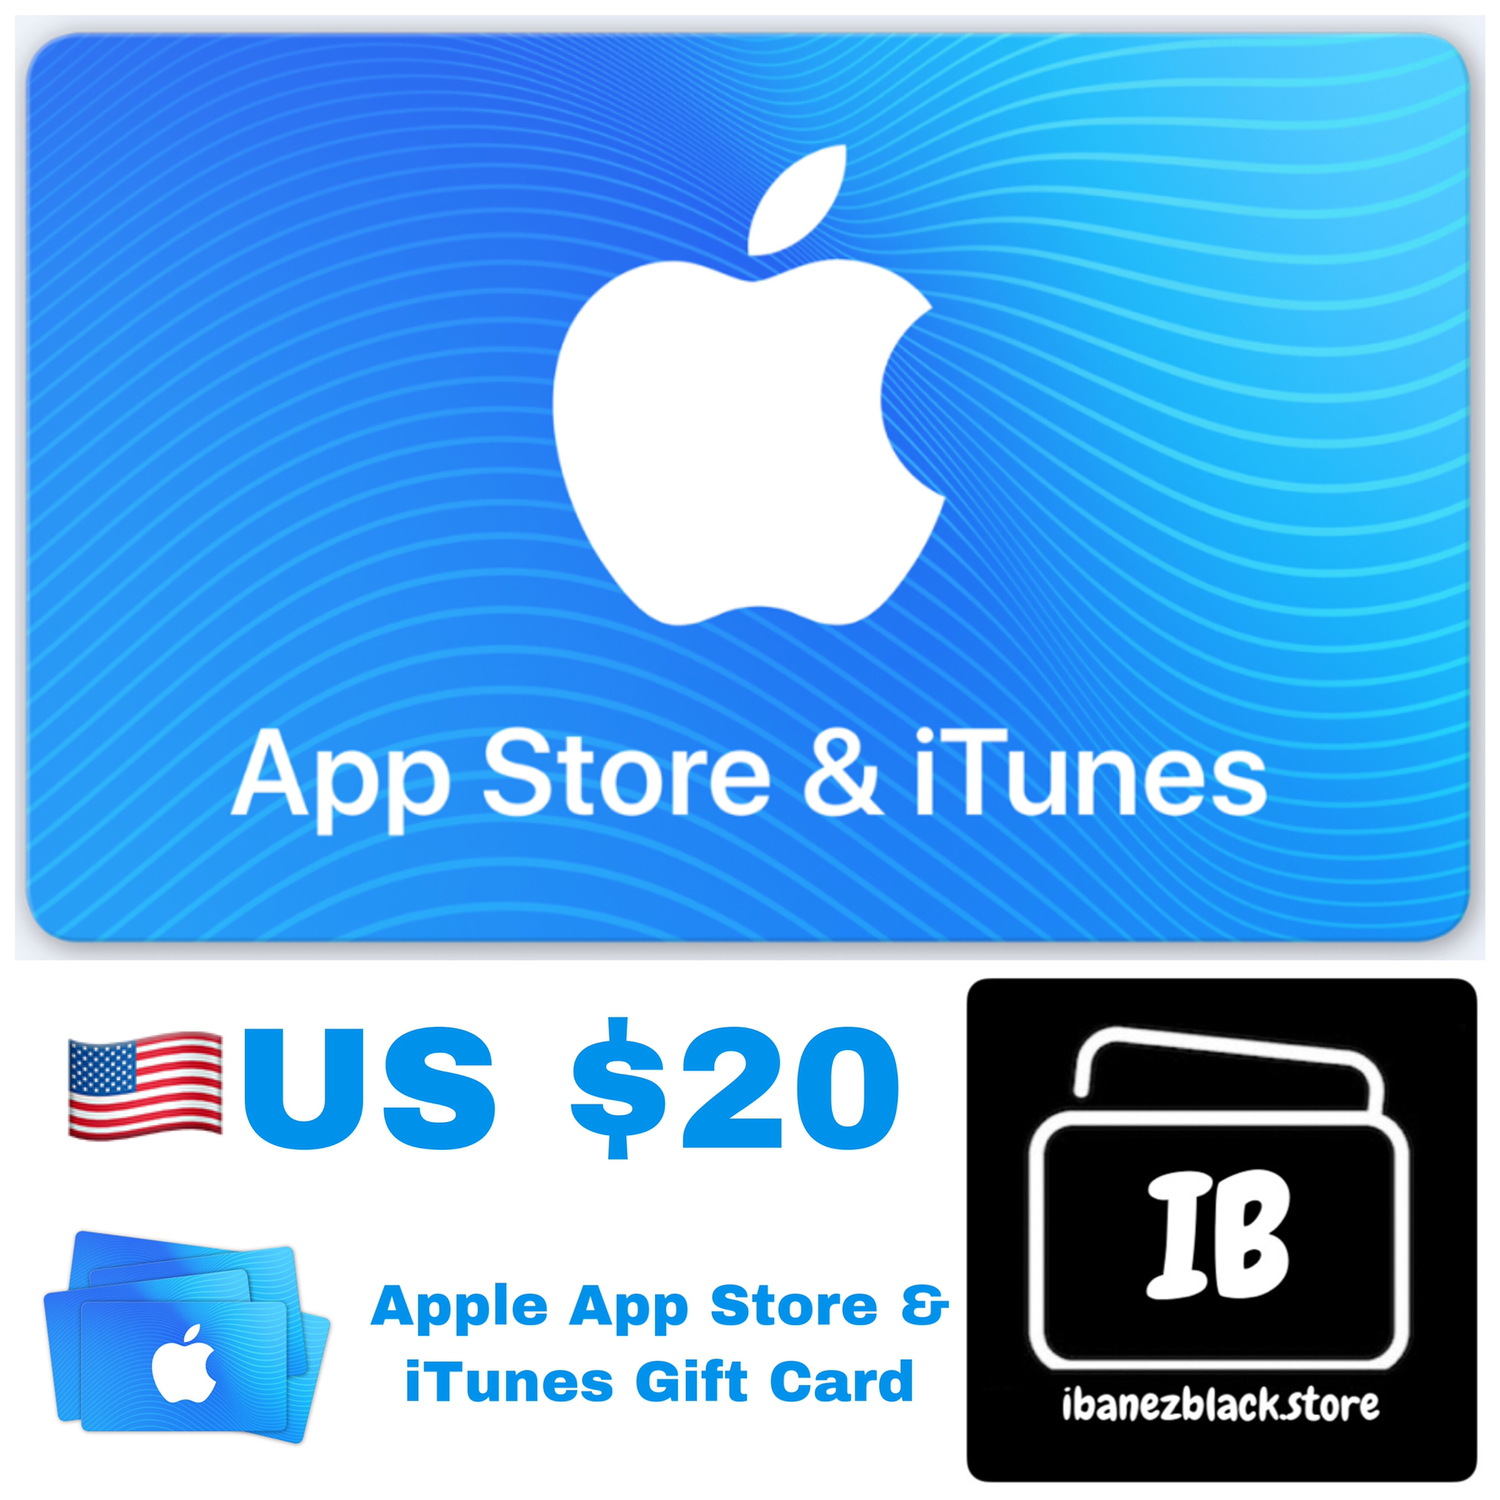 Apple App Store & iTunes Gift Cards US $20